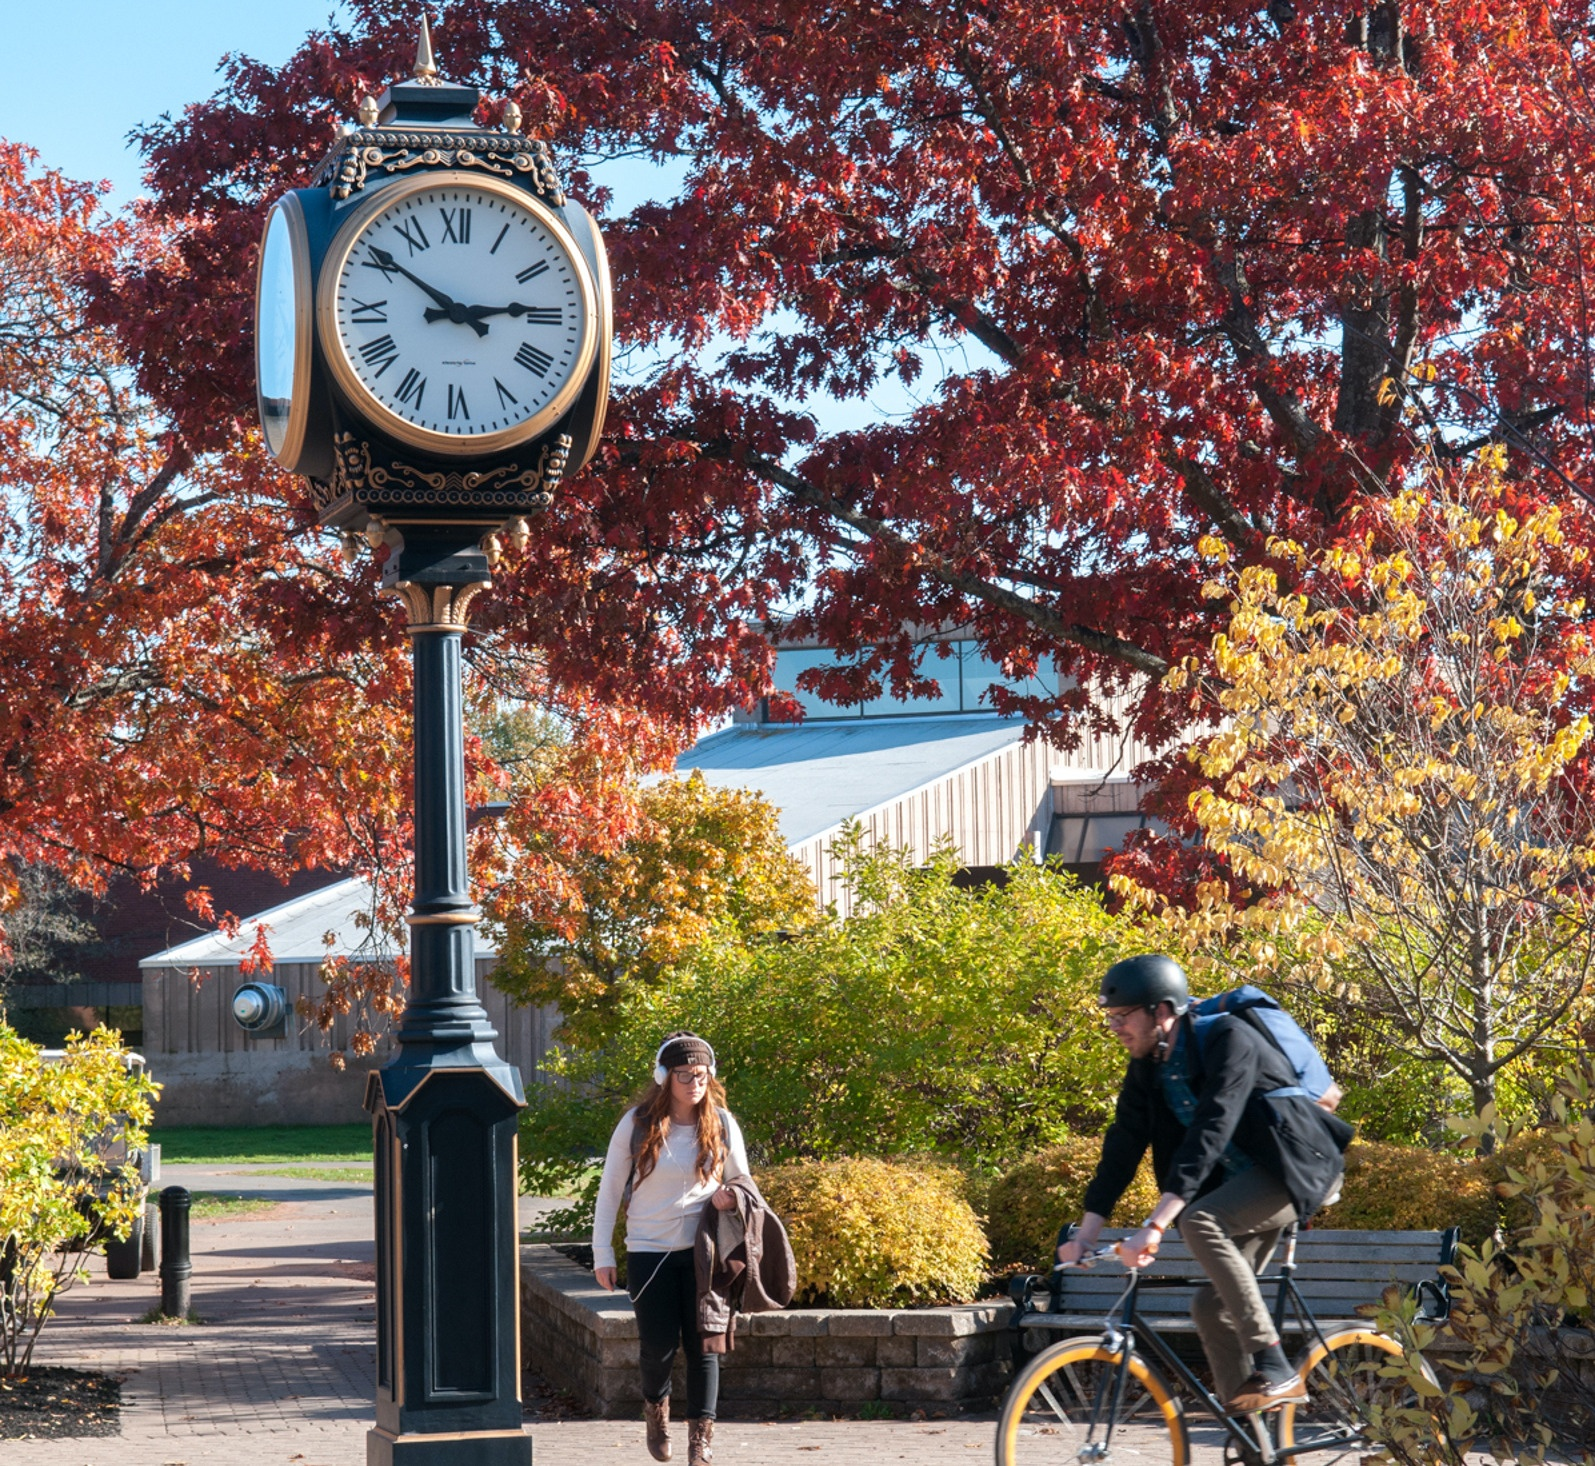 Students pass under the UPEI clock